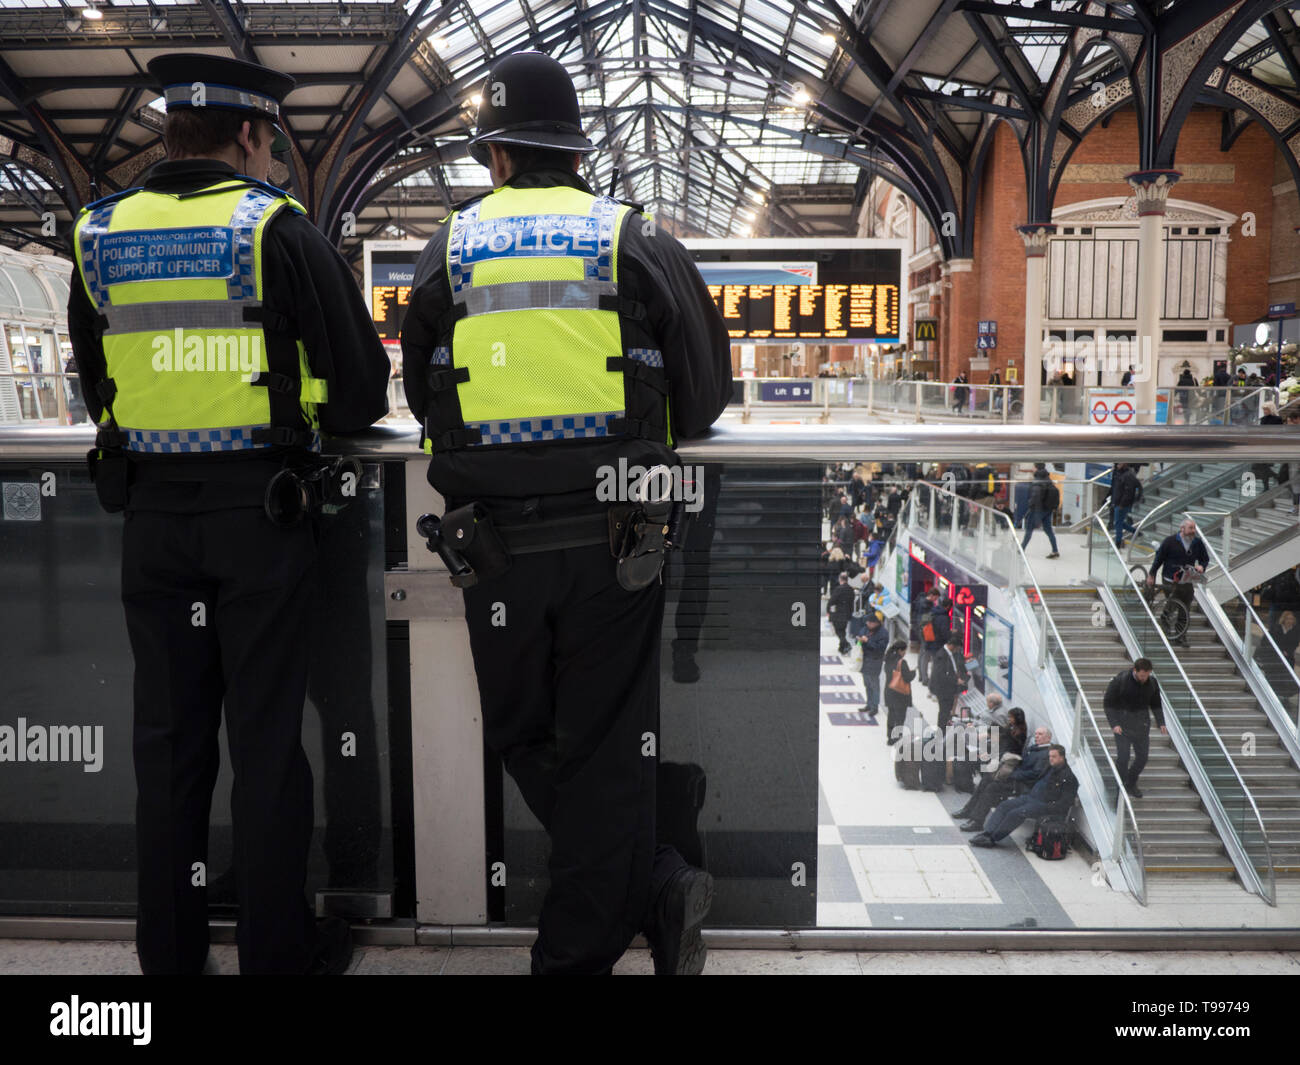 British transport police officer and Community support officer on duty at central London Station Stock Photo